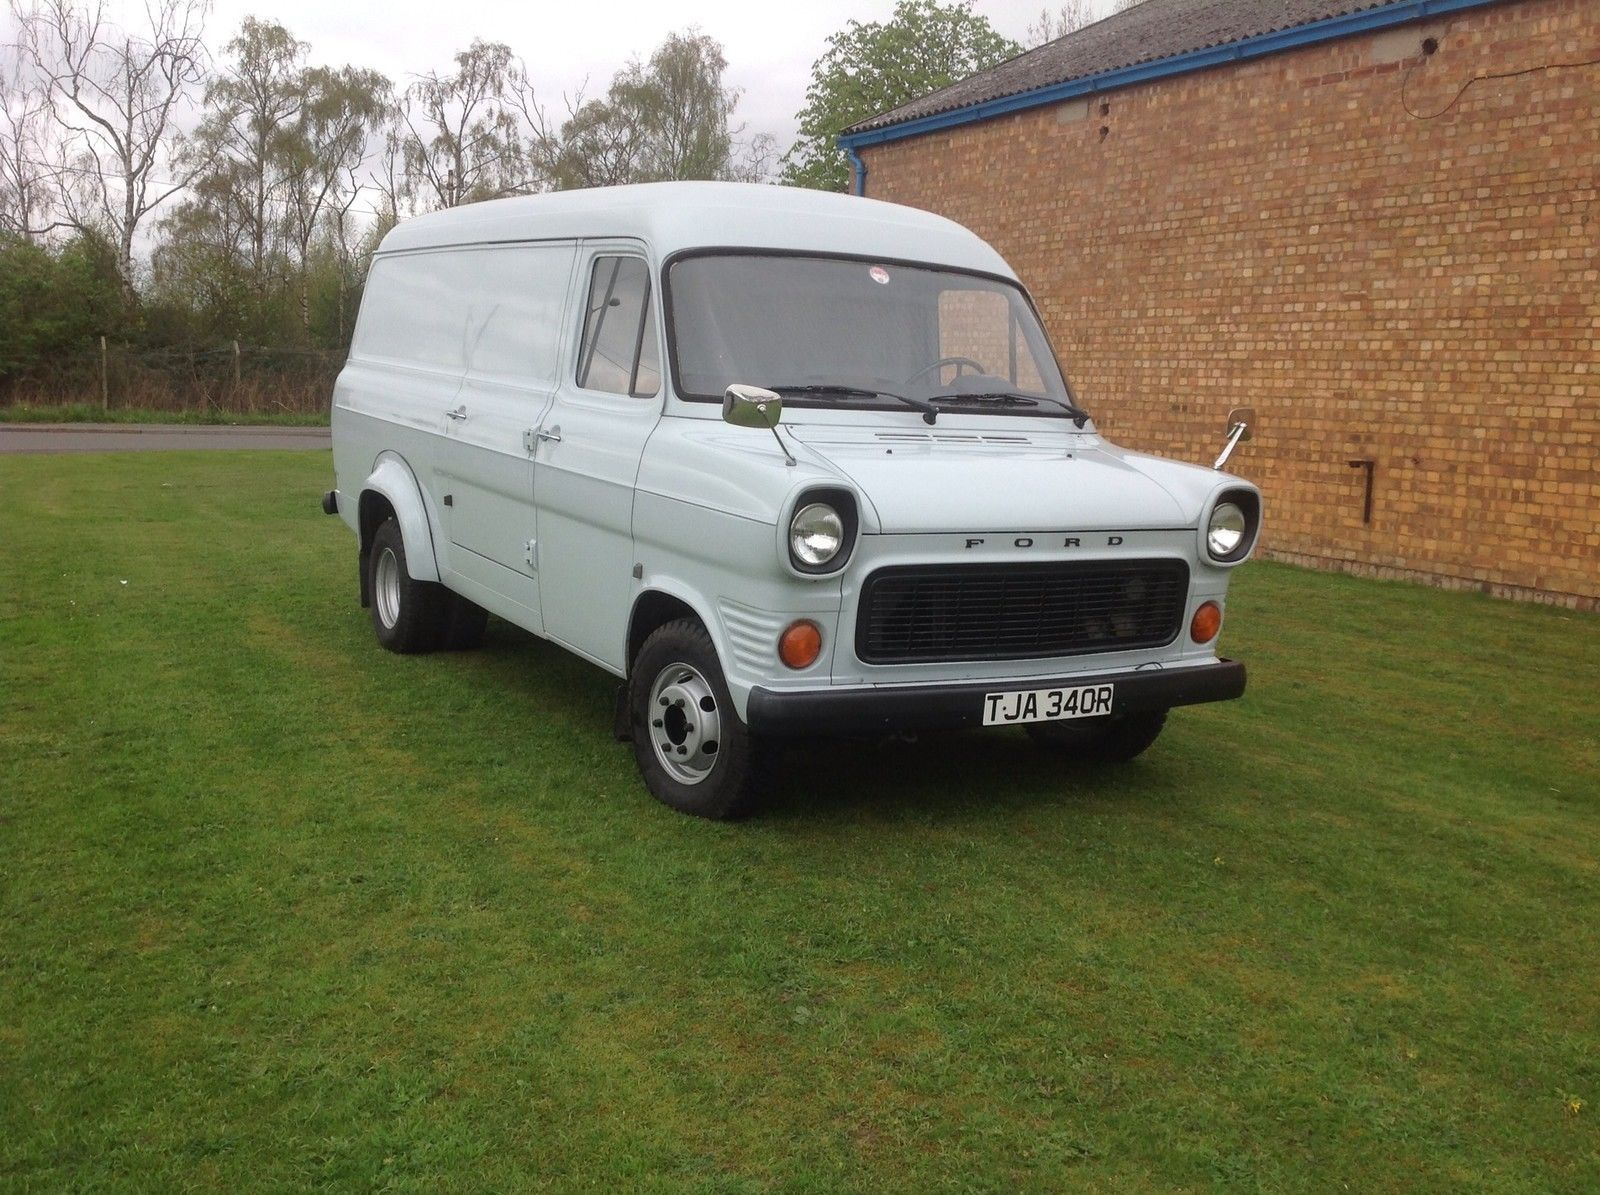 Details About Mk1 Ford Transit Van Ford Transit Ford Classic Fords For Sale